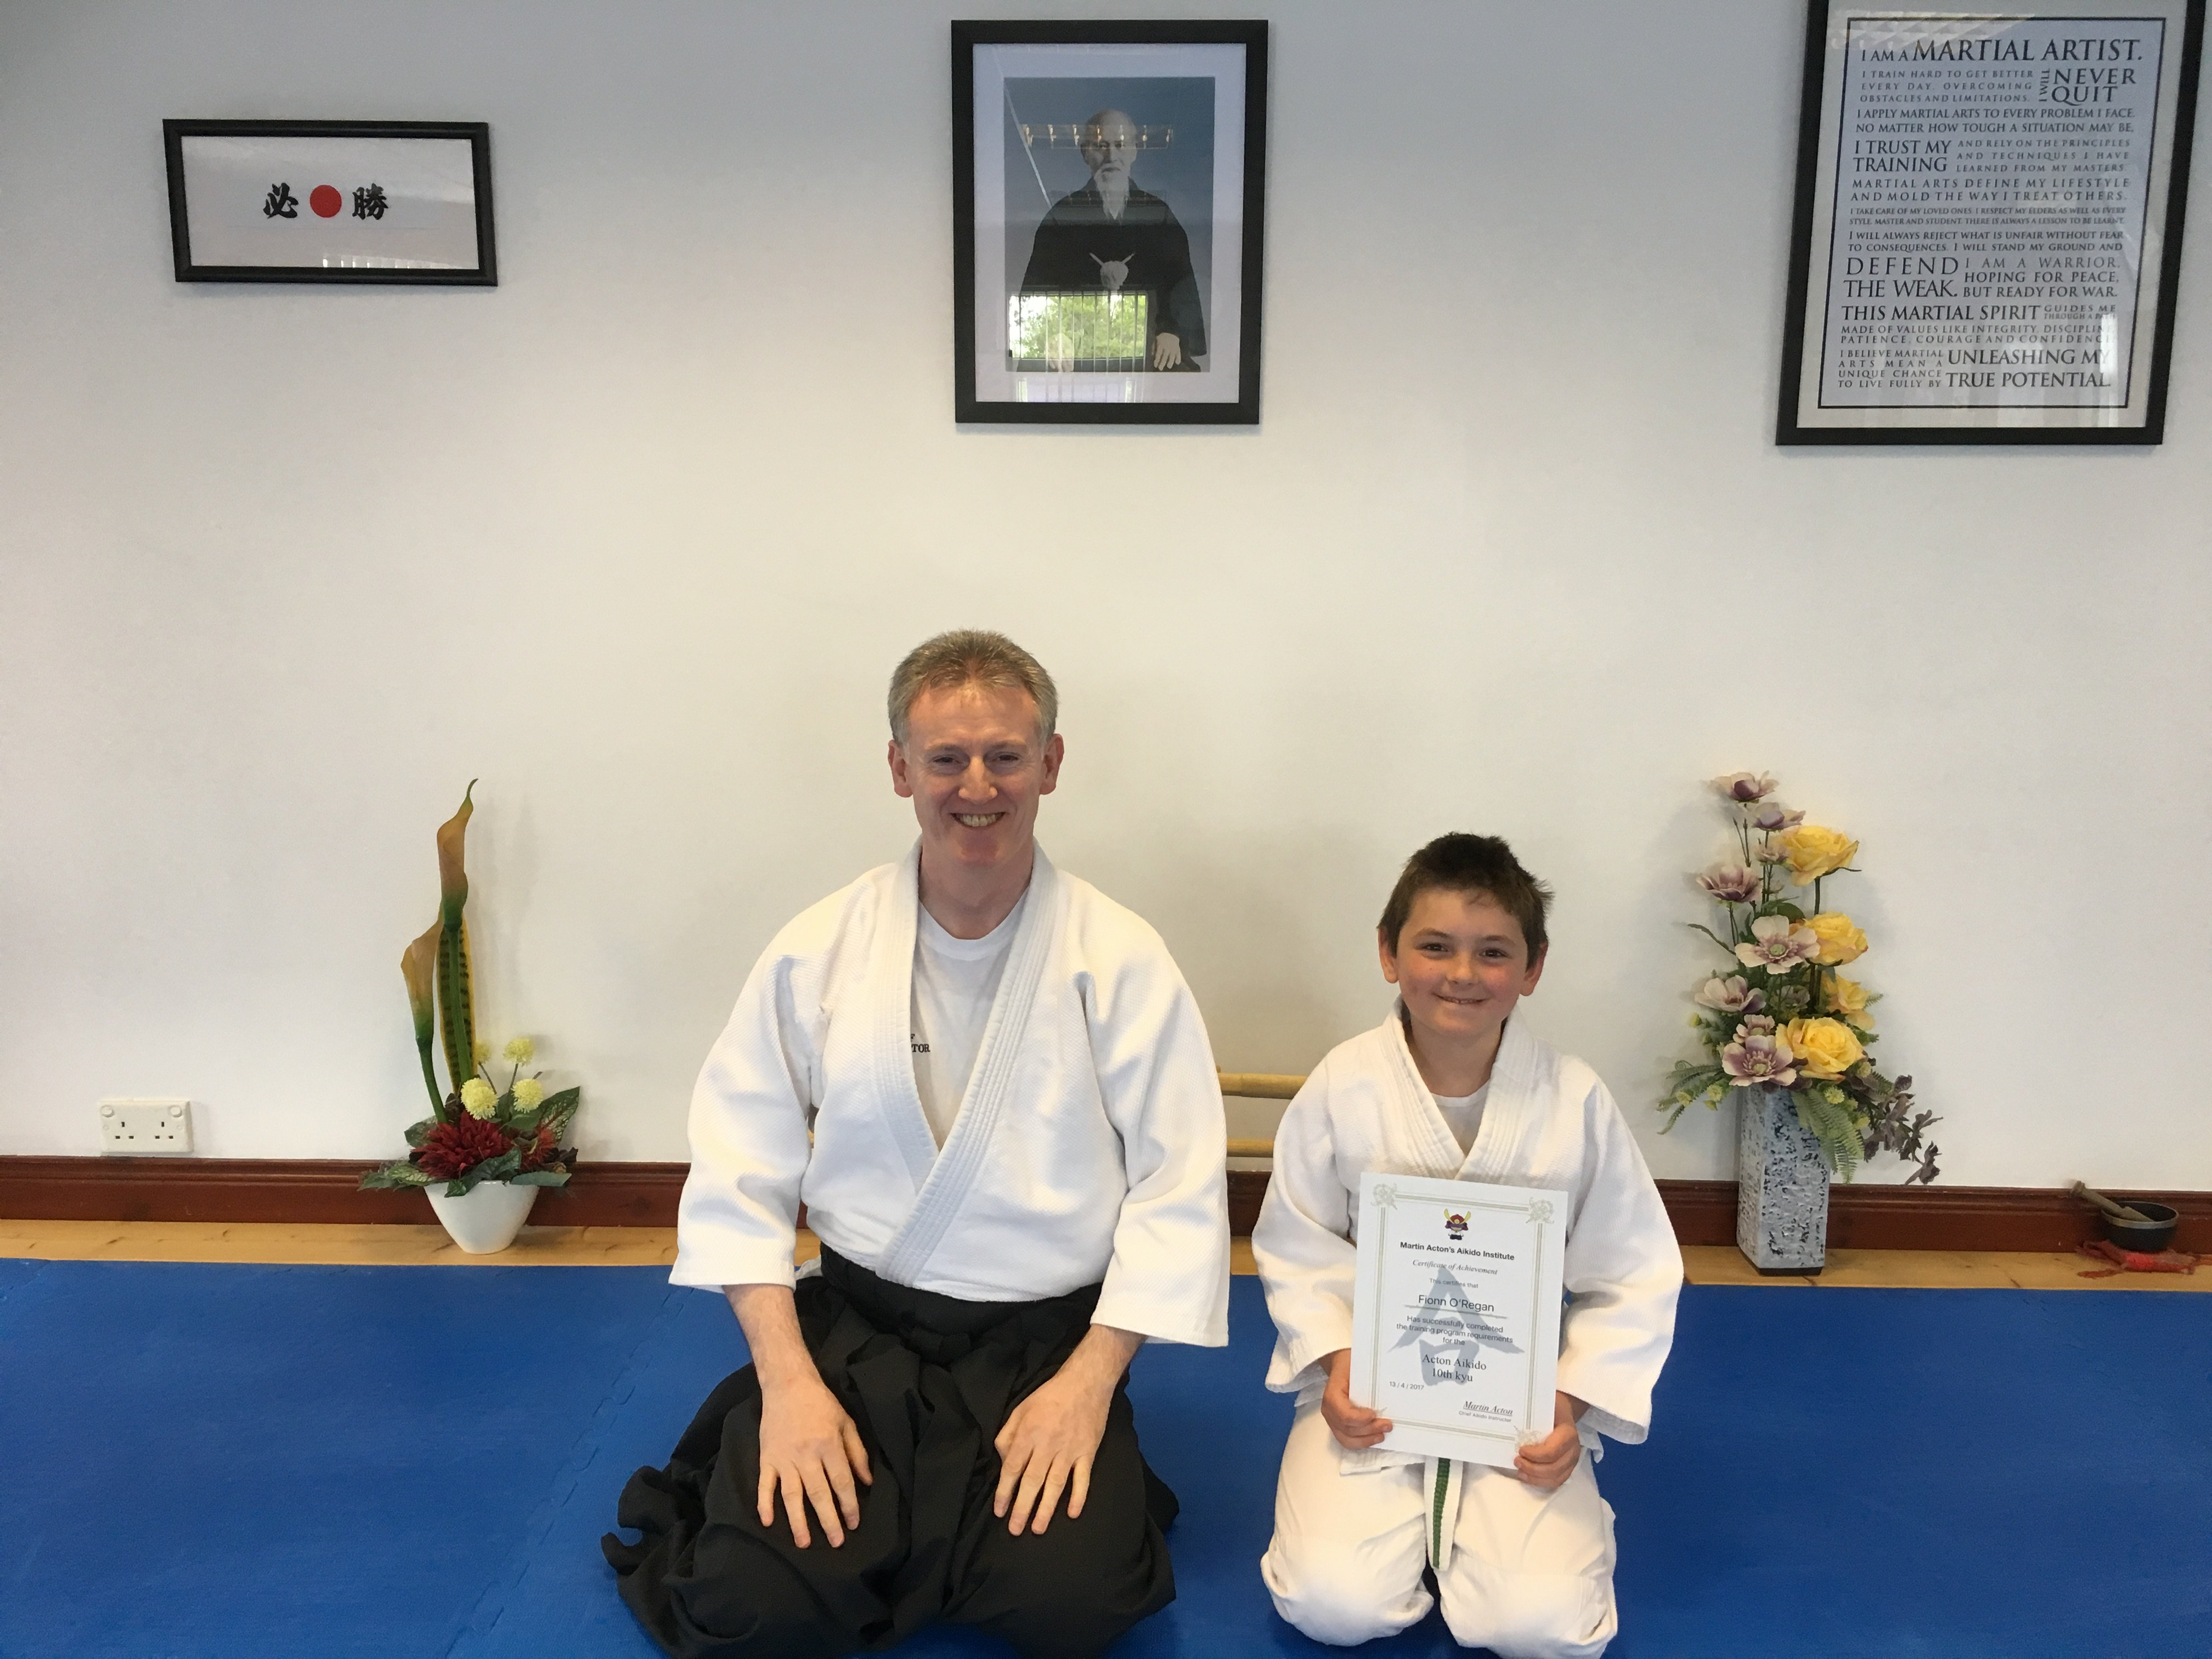 Fionn O'Regan receiving his 11th kyung certification with Martin Acton Sensei 13.4.2017